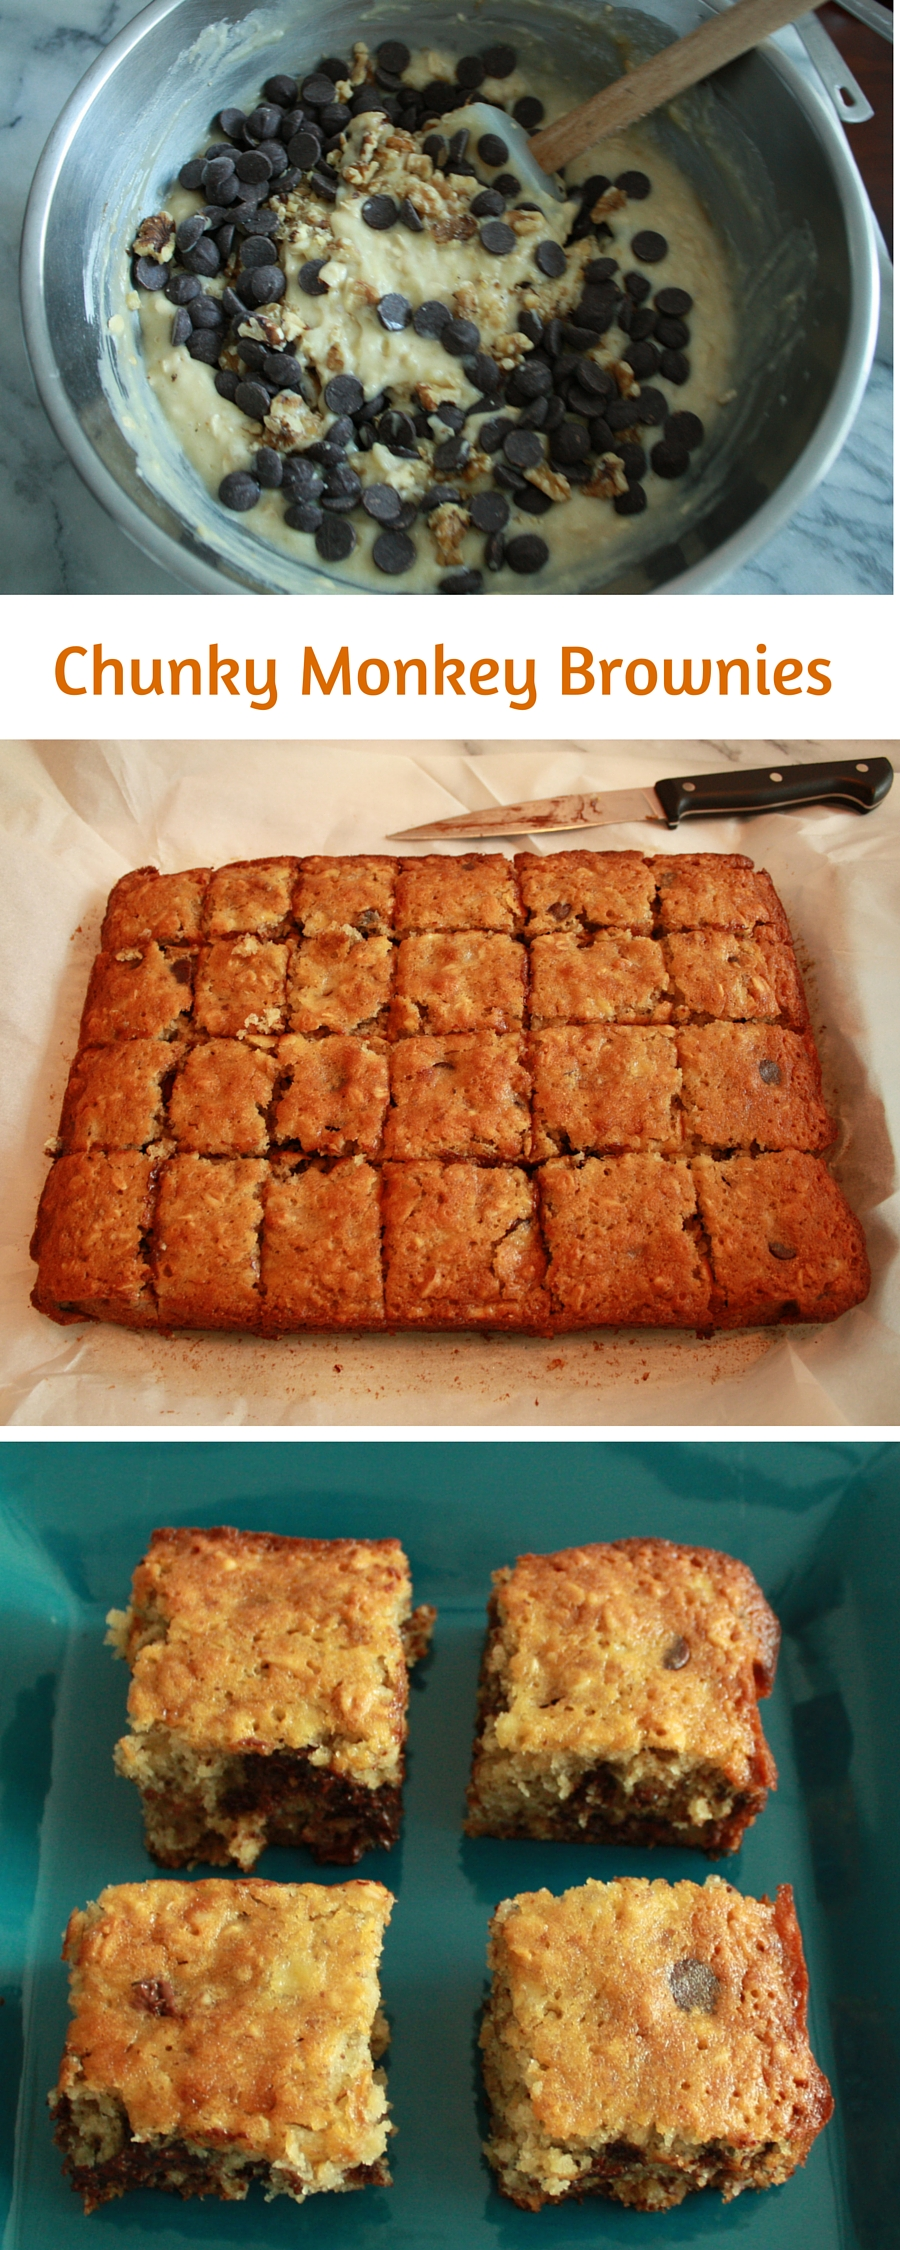 Chunky Monkey Bars are the perfect way to combine bananas, chocolate, walnuts and oats.